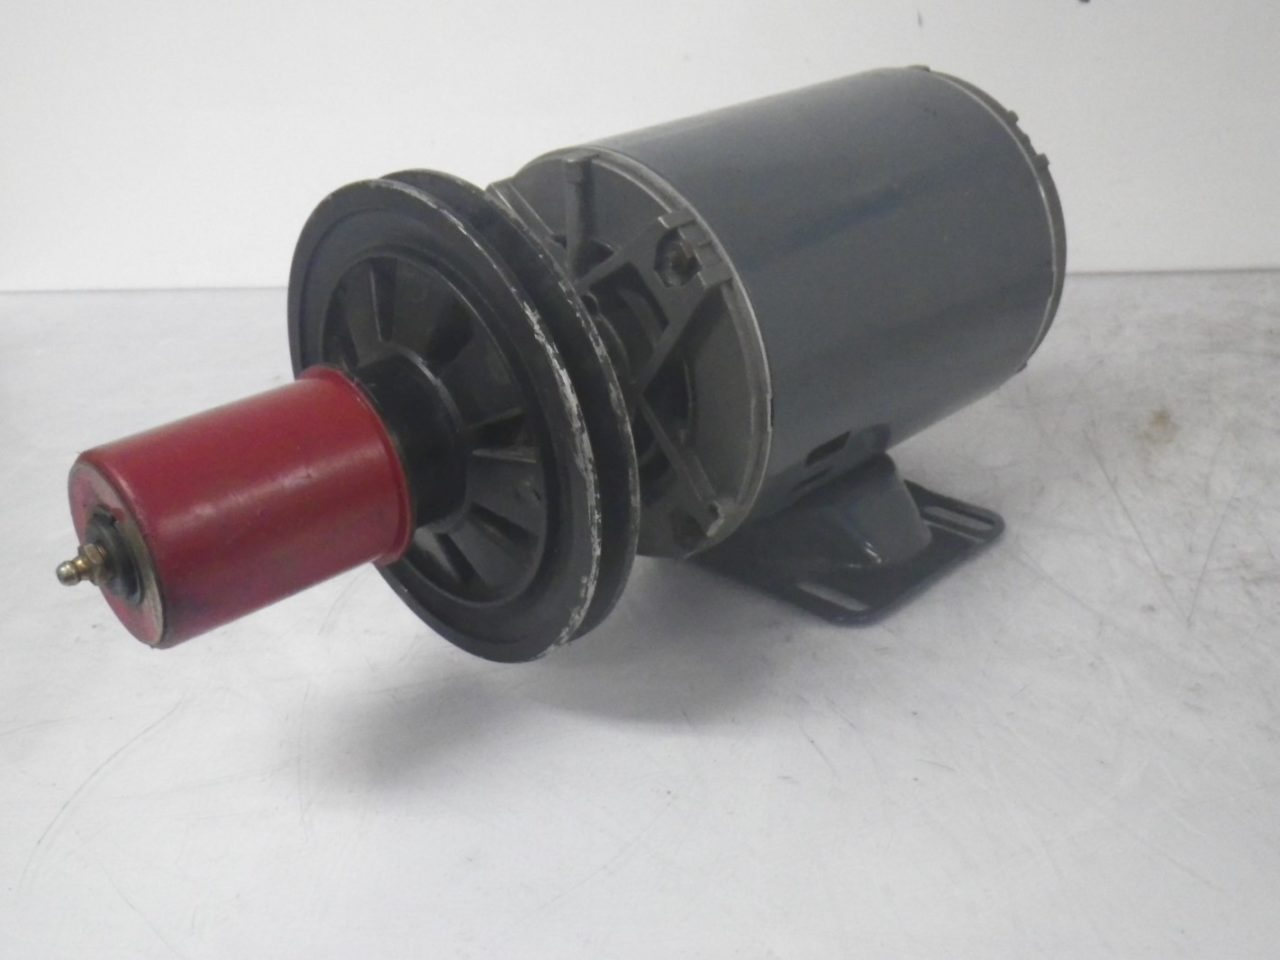 IMGP65595K36MN4B 160 58B GE Motor With LOVEJOY Pulley Type 160 58b 12hp 208-230460v 1725rpm (10)